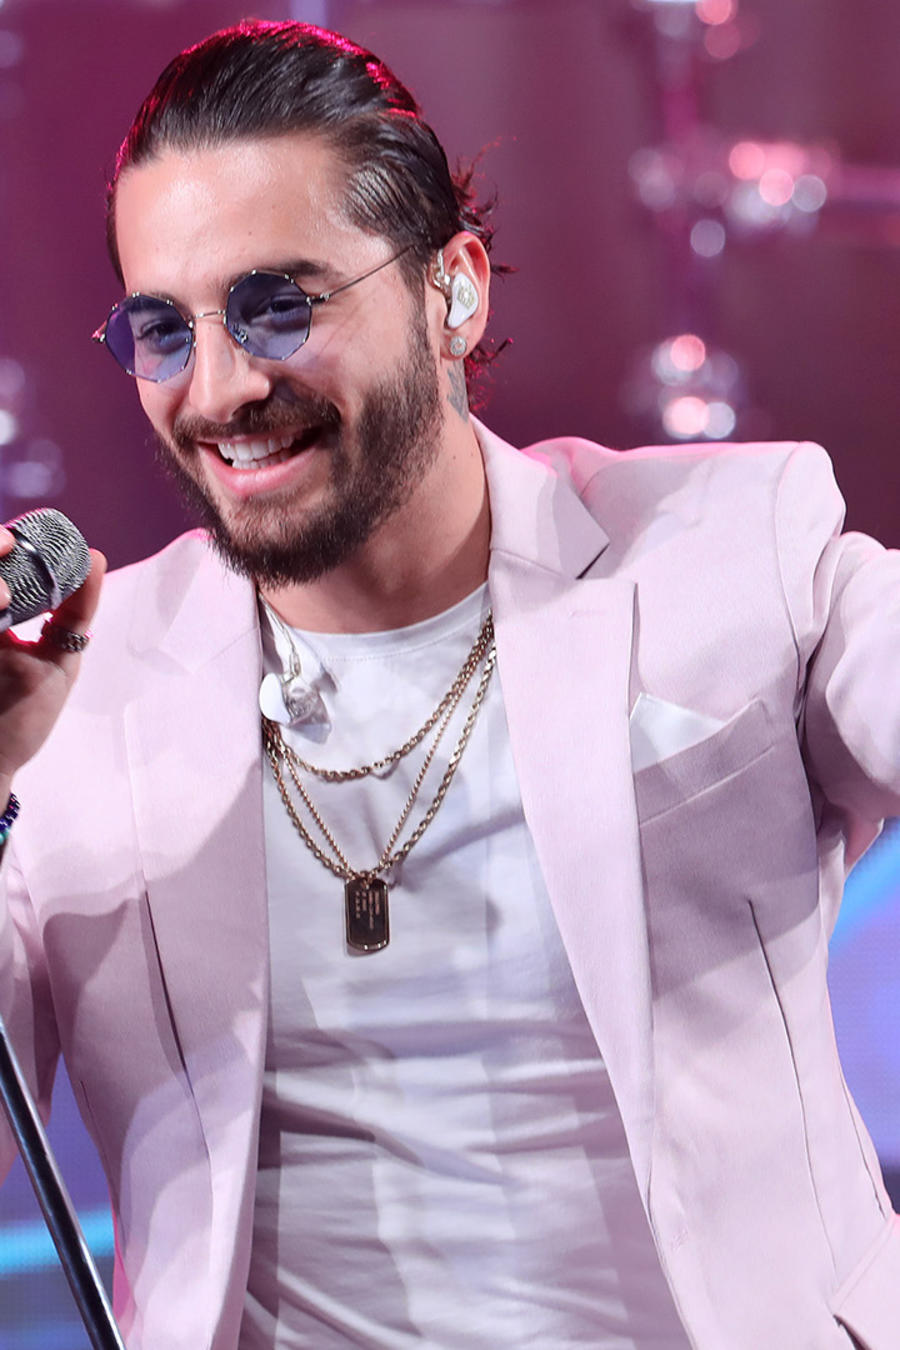 Maluma Performs The Spanish Version Of The Coca-Cola Anthem For the 2018 FIFA World Cup